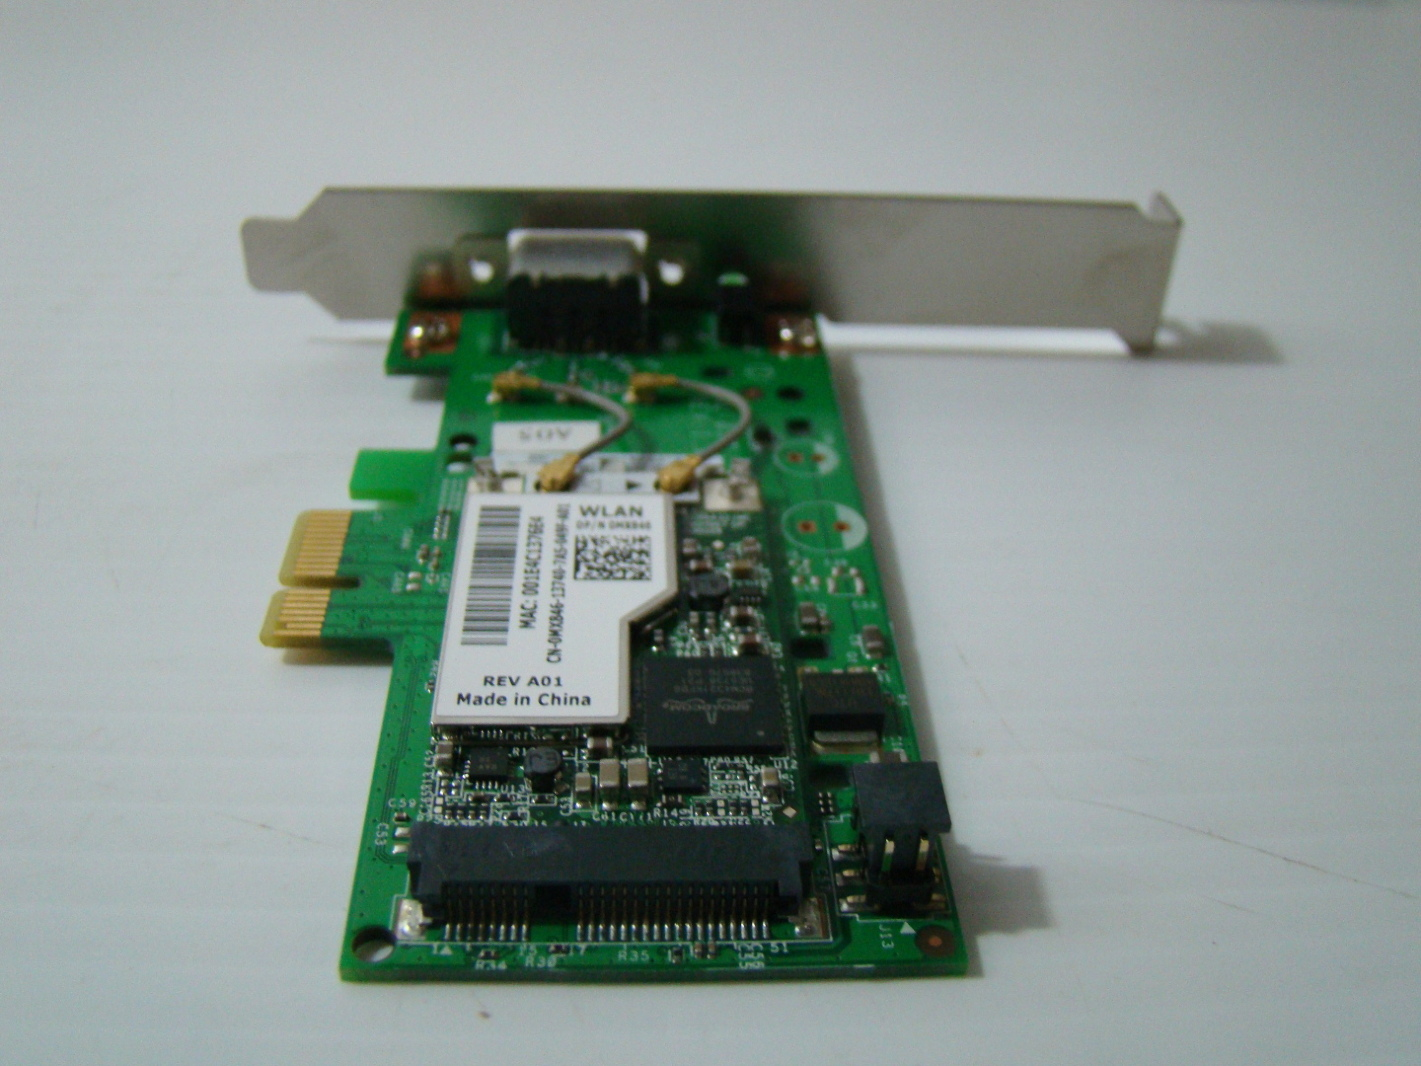 DELL 1505 WLAN PCIE CARD WINDOWS VISTA DRIVER